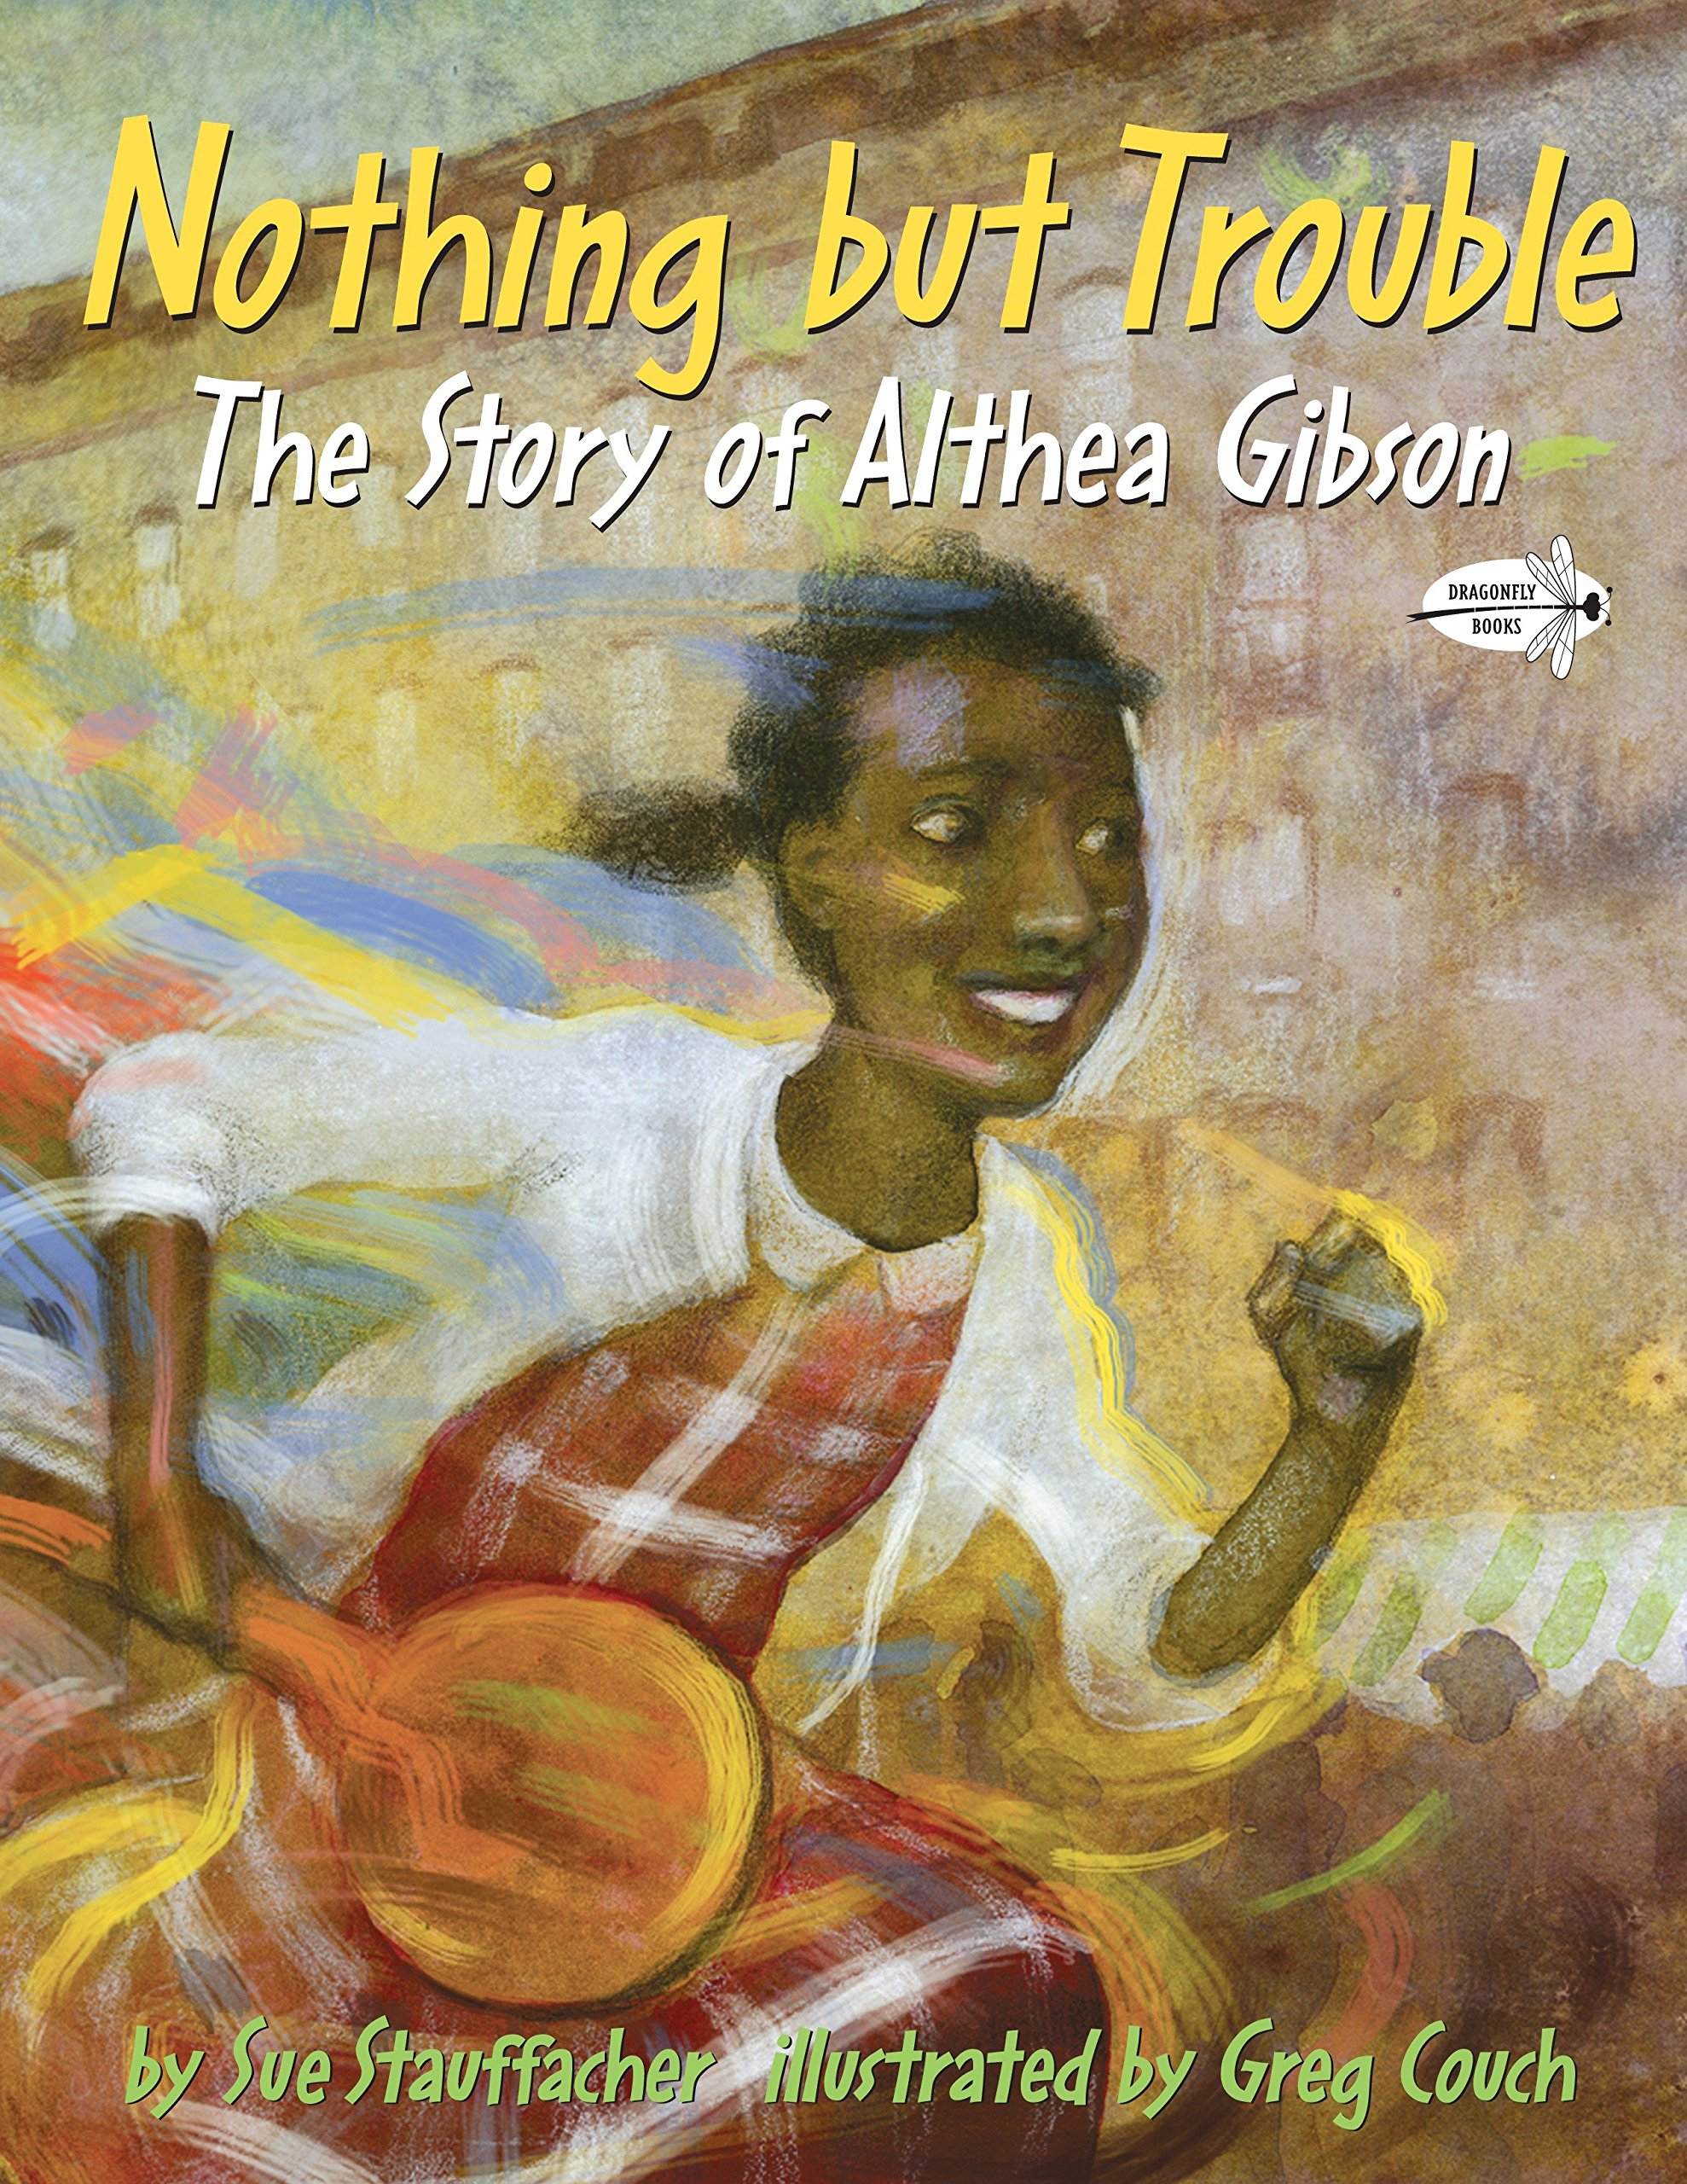 Nothing but Trouble: The Story of Althea Gibson